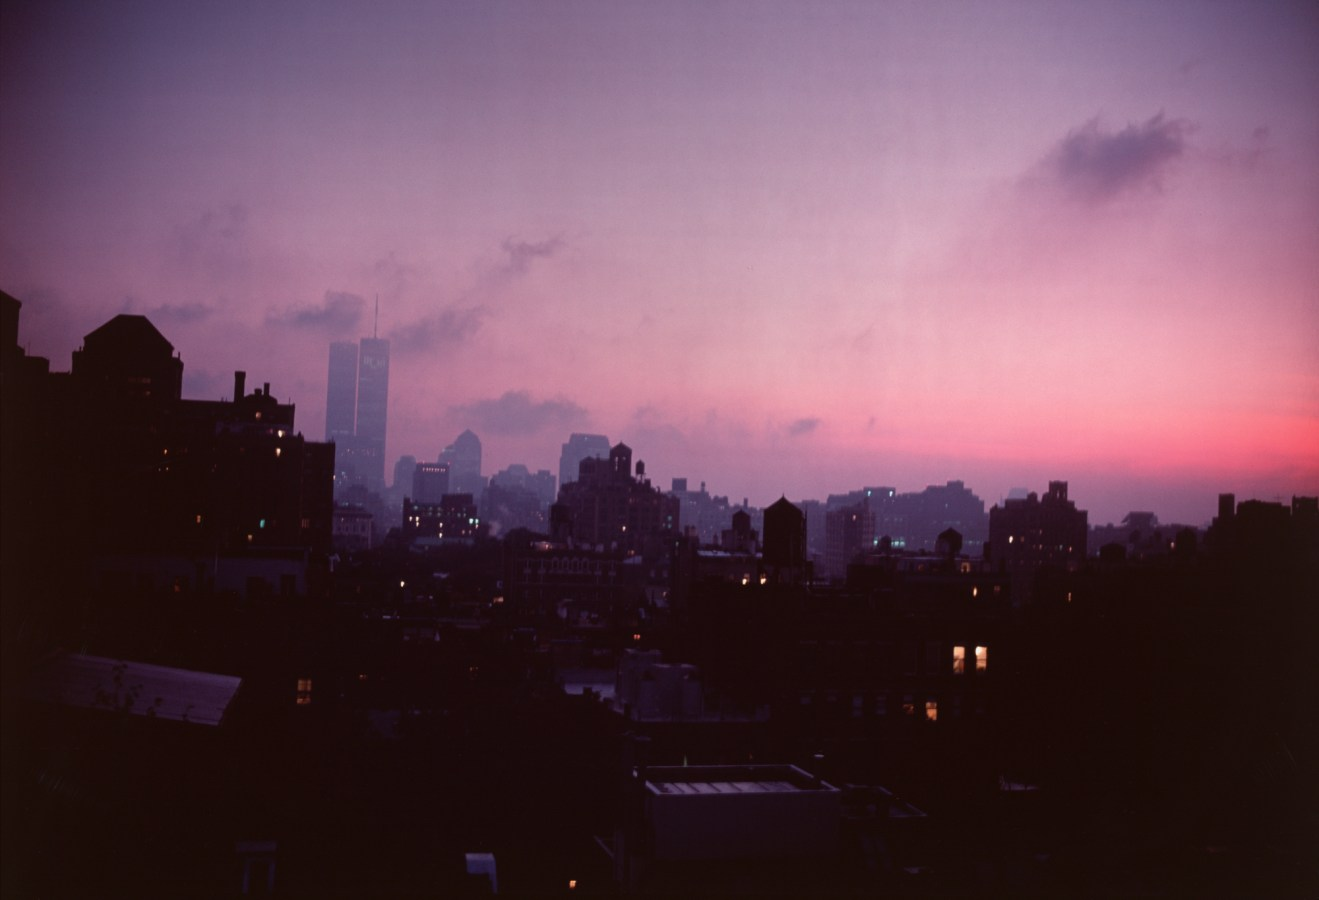 Color photograph of a city skyline at sunset under a pink and purple sky